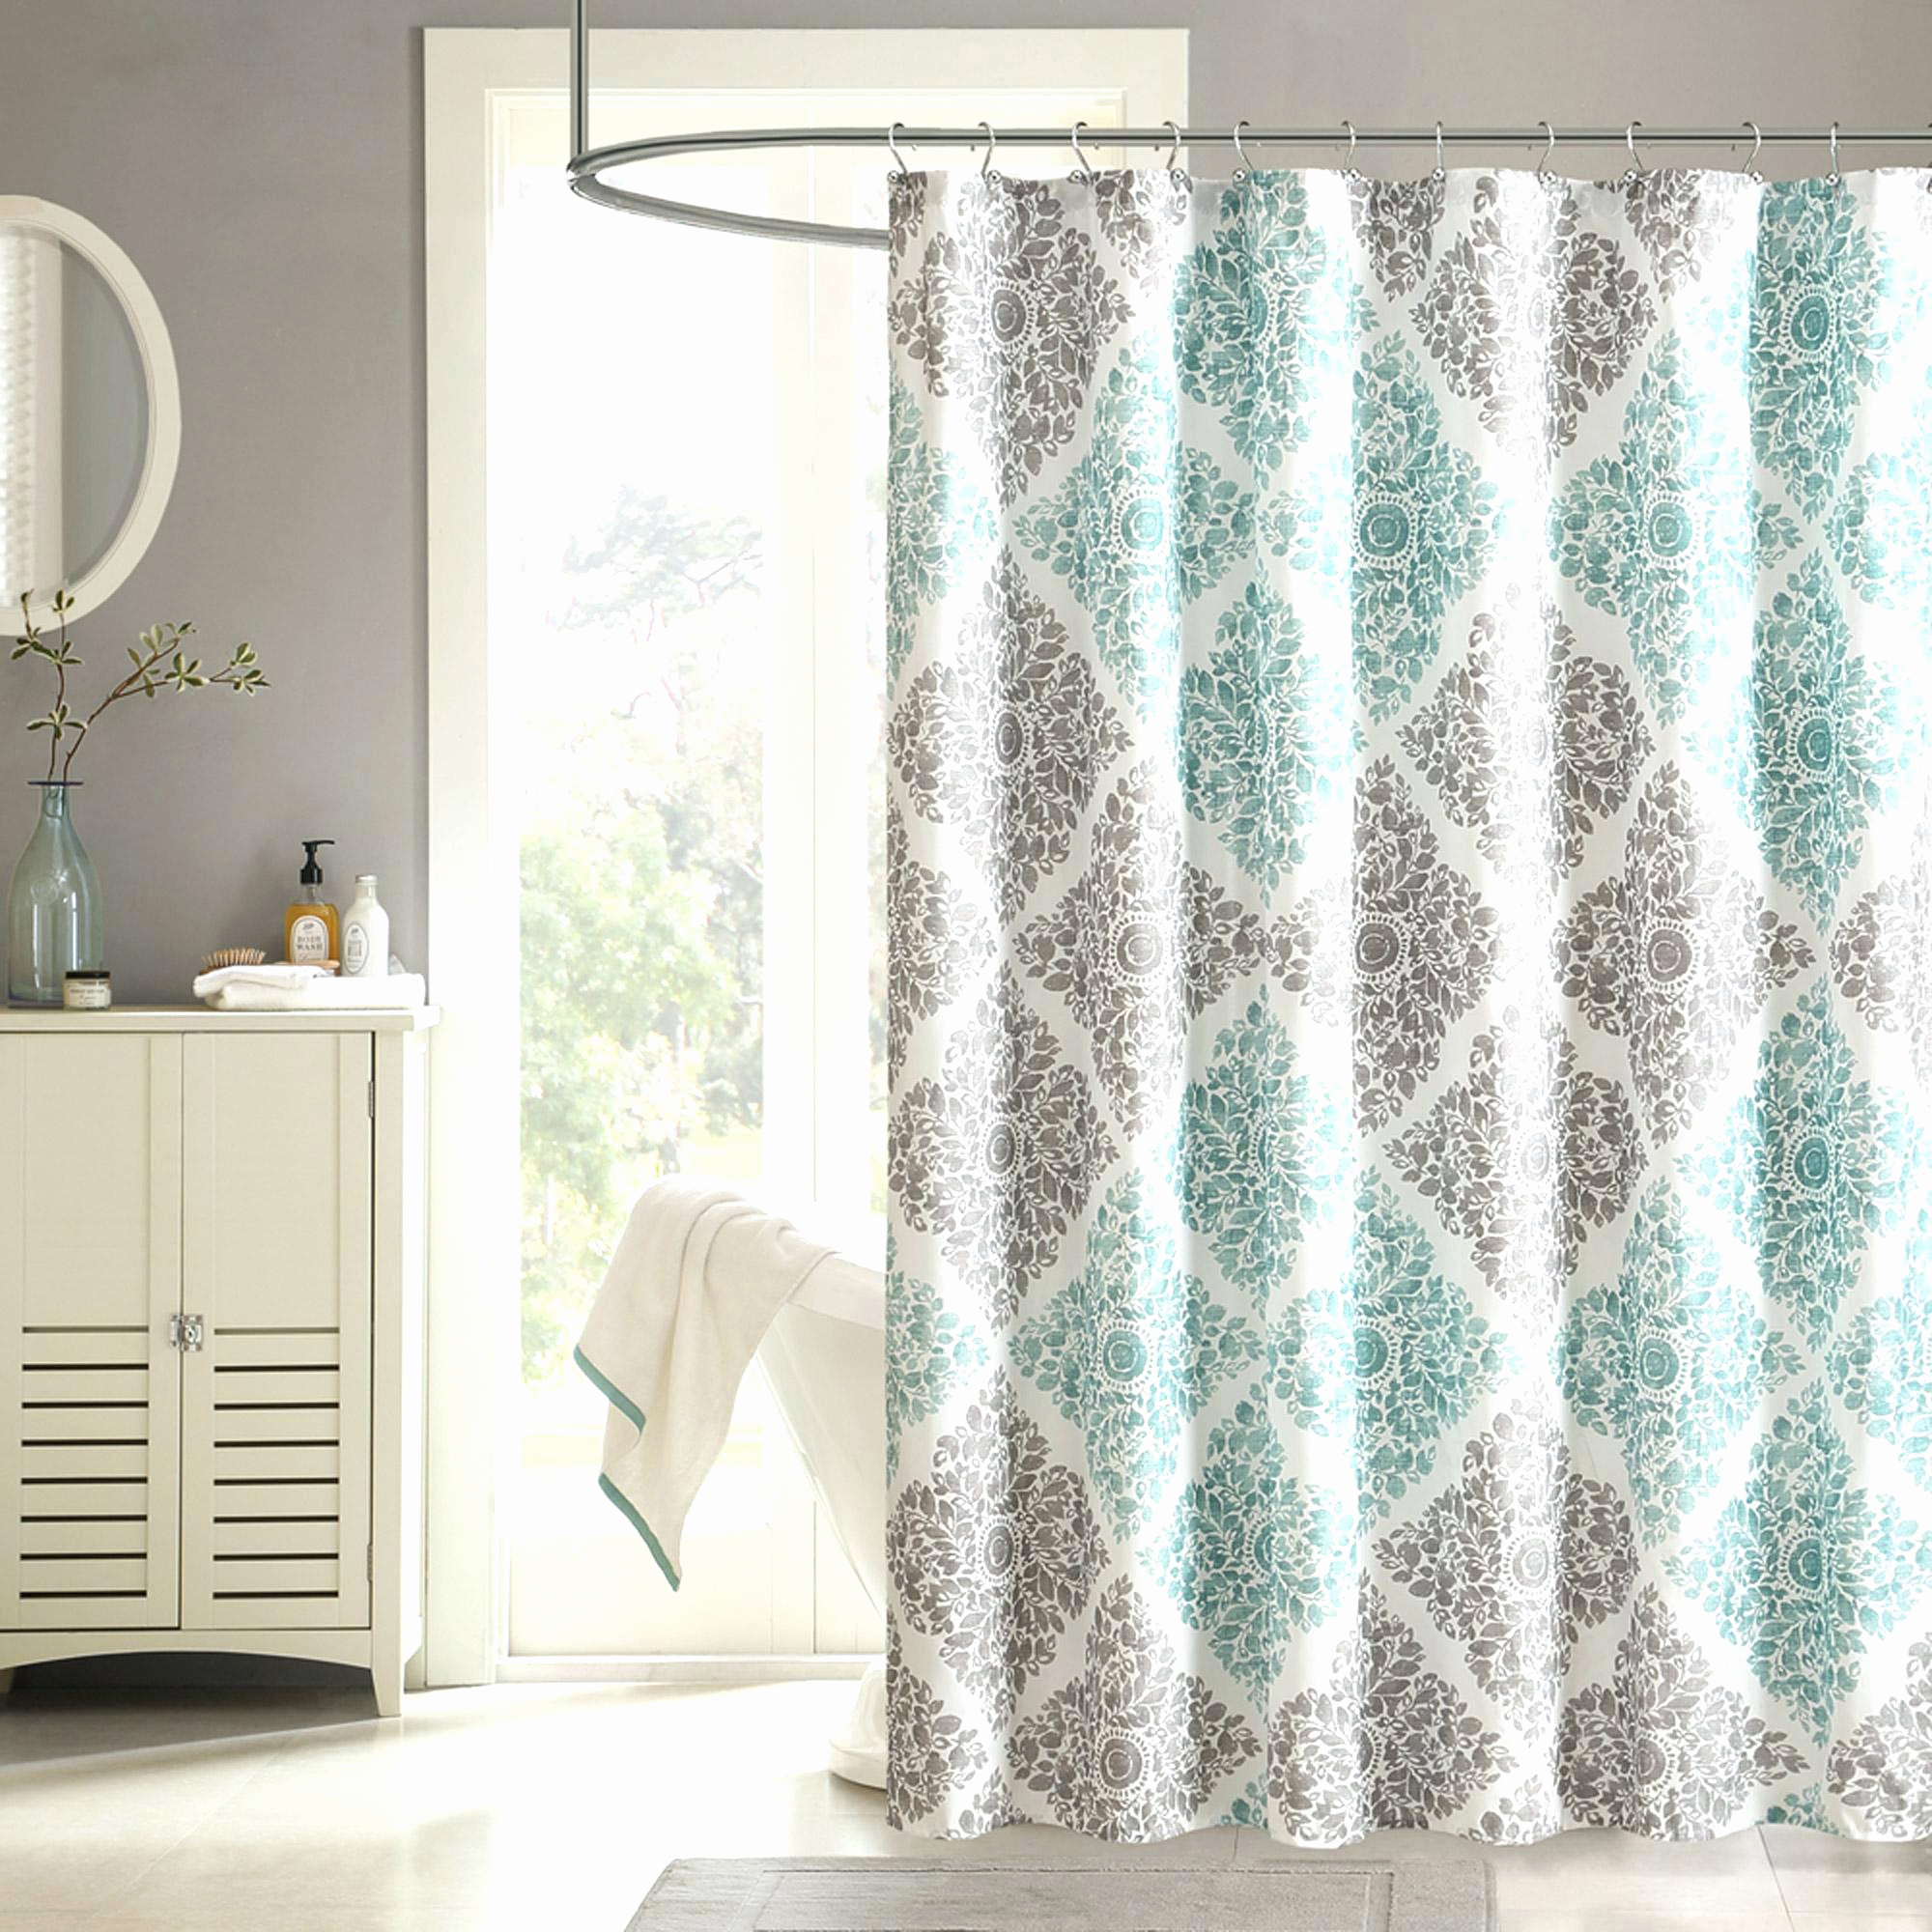 24 New Dollar Tree Shower Curtain Home Furniture Ideas Home Inside  Dimensions 2000 X 2000